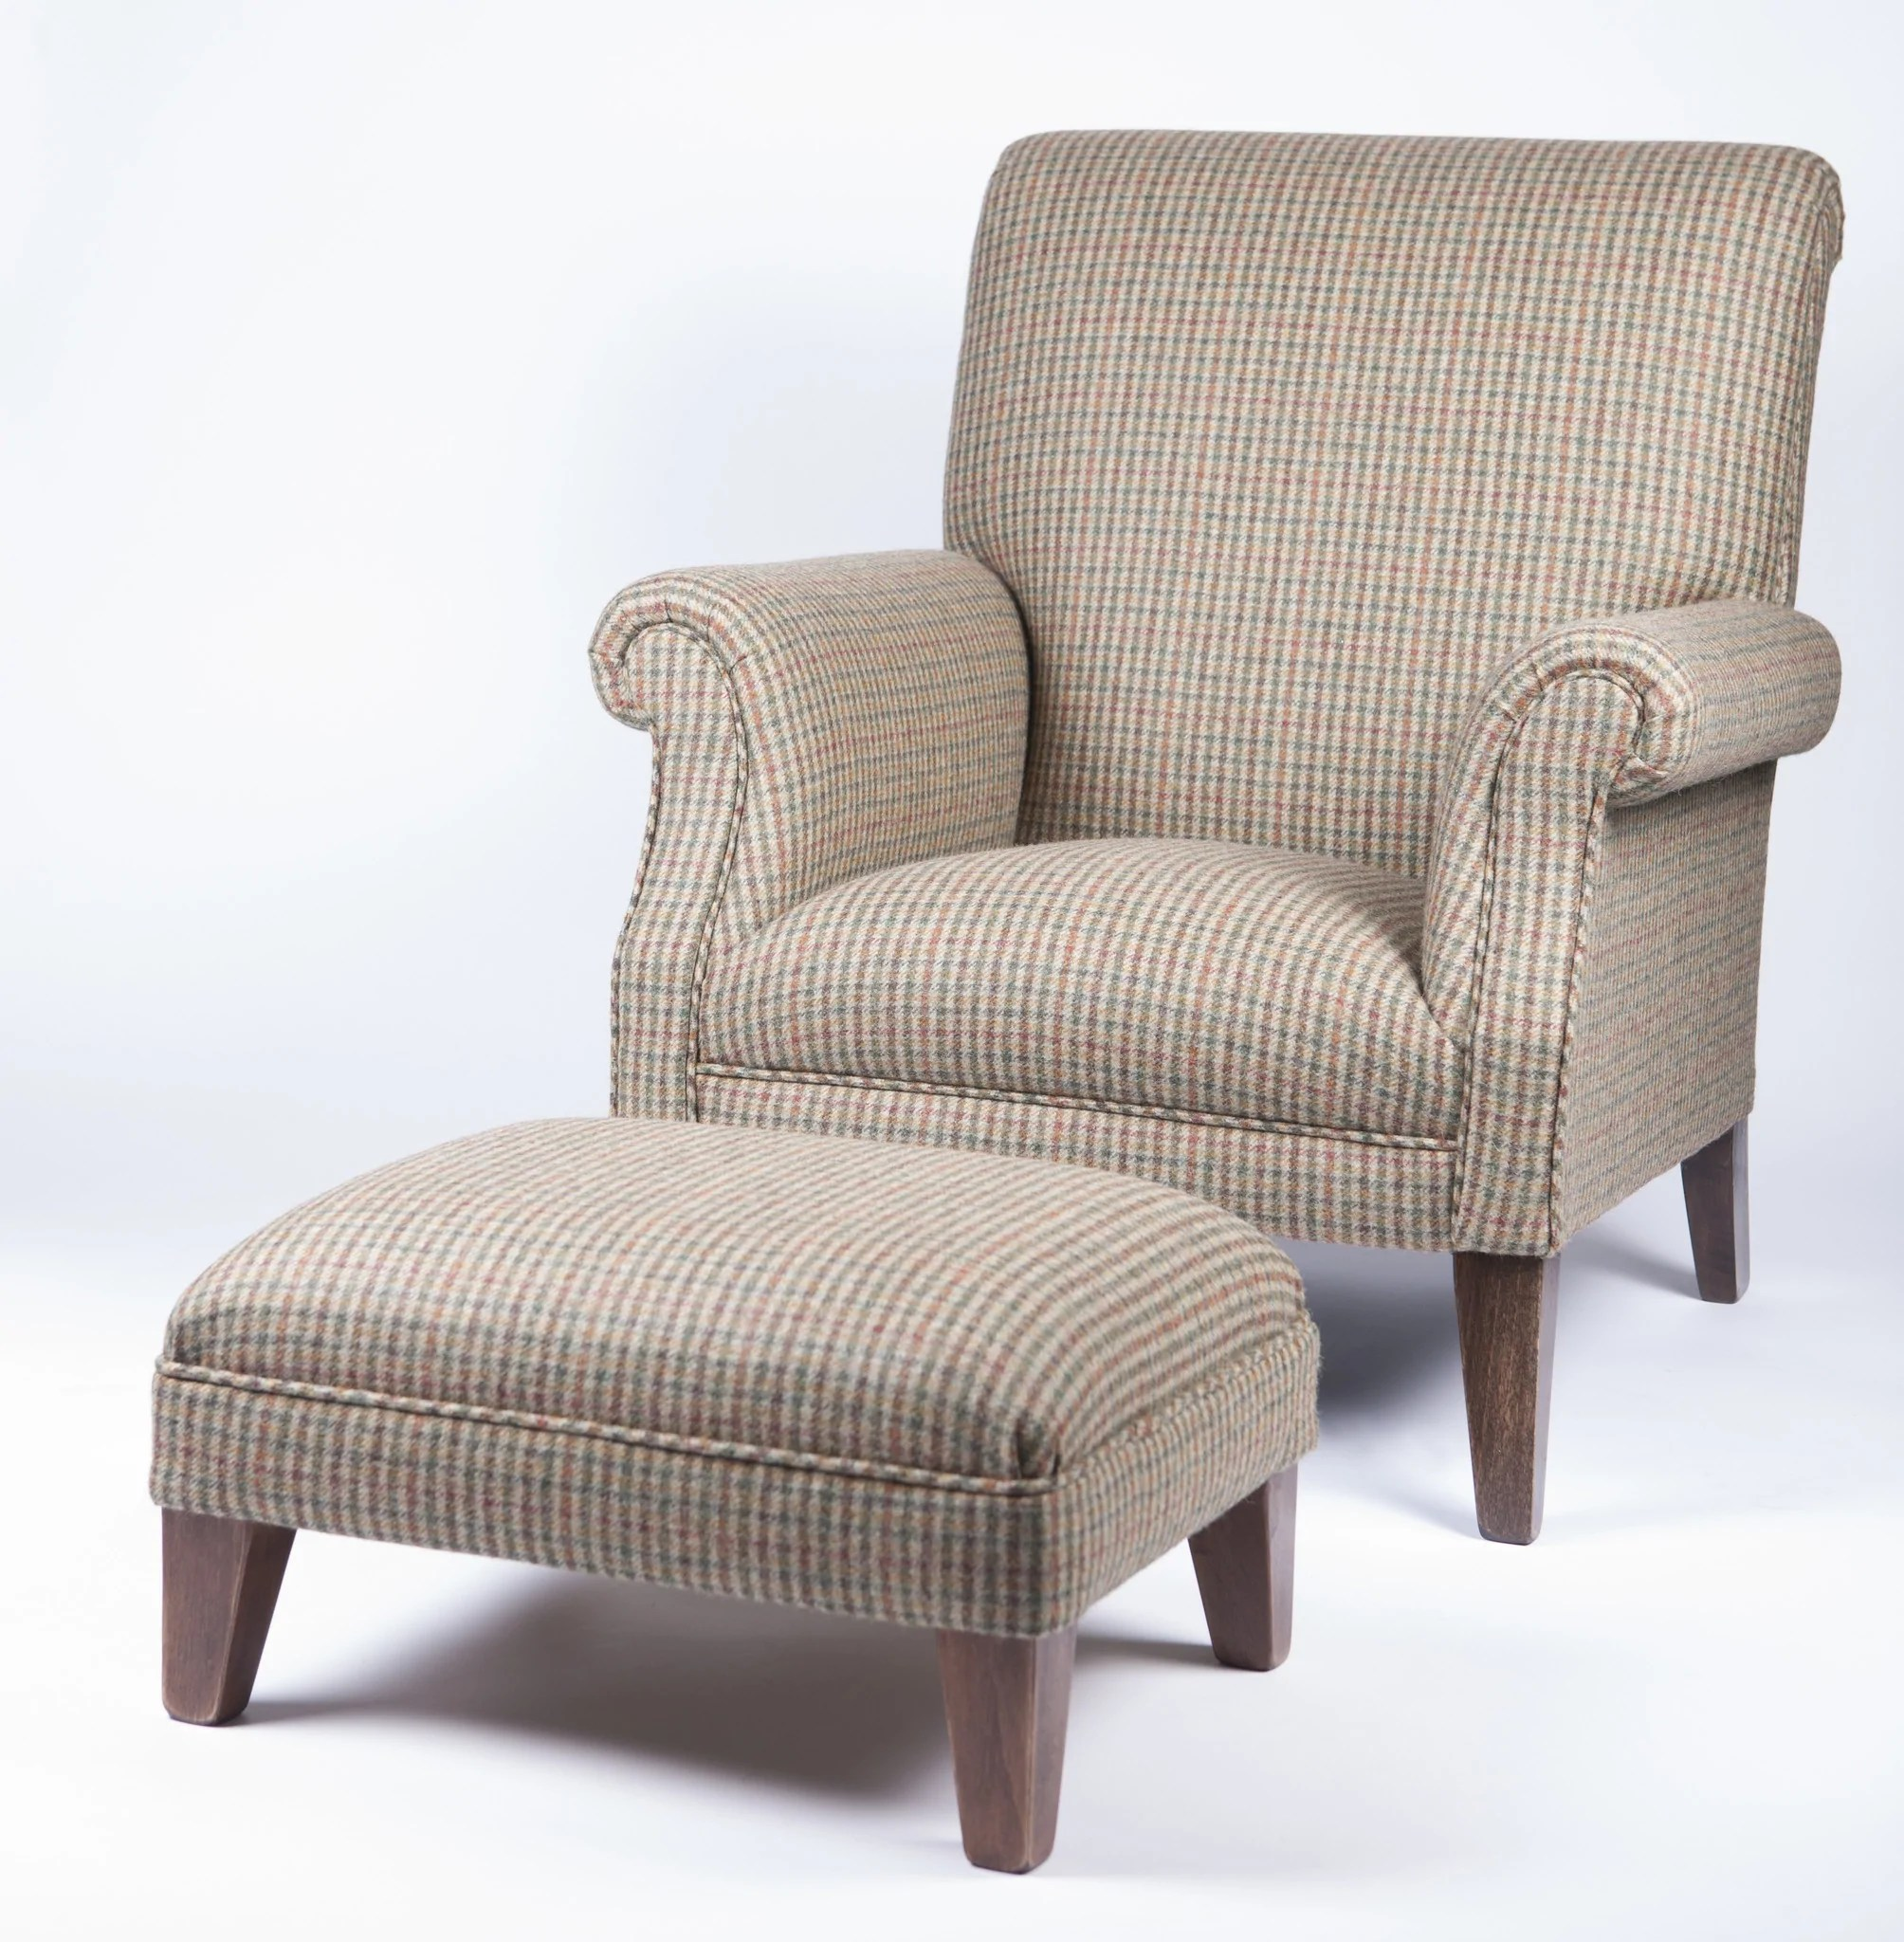 Fabric Stores Burlington Ontario Burlington Children 39s Armchair Ellerby England Ellerby